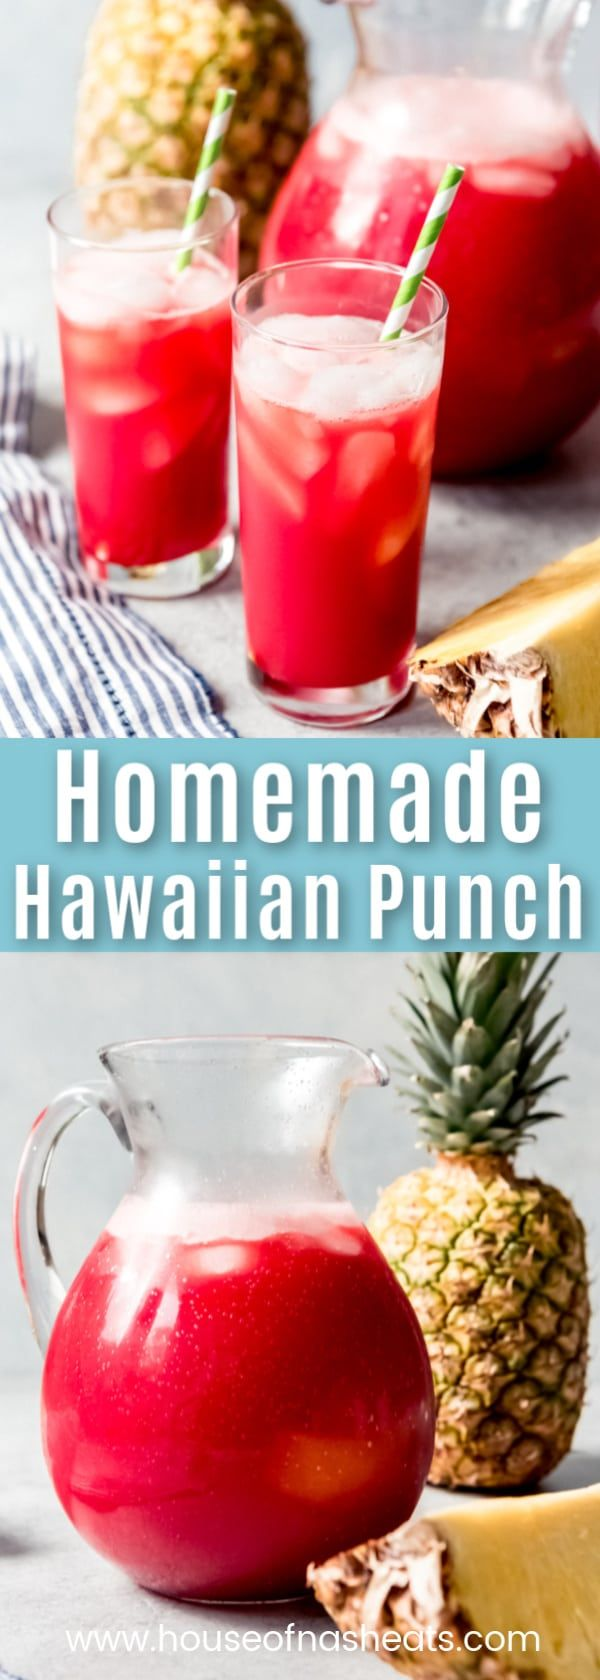 Homemade Hawaiian Punch #nonalcoholicsummerdrinks